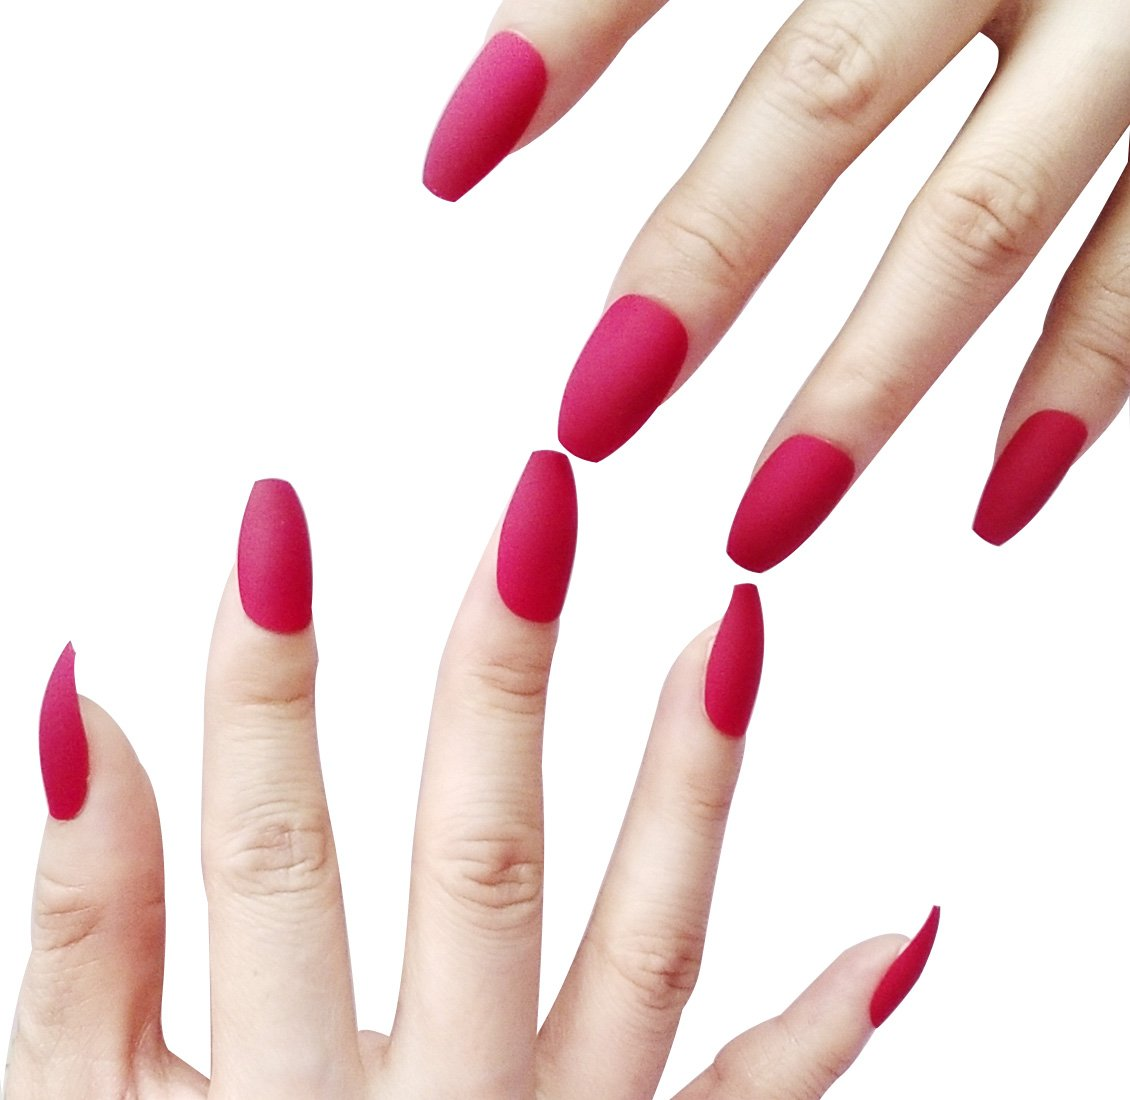 False Nails Coffin Shape Nails with Designed Matte Dark Red Short Medium Fake Nails Tips Piao Yang XK0000